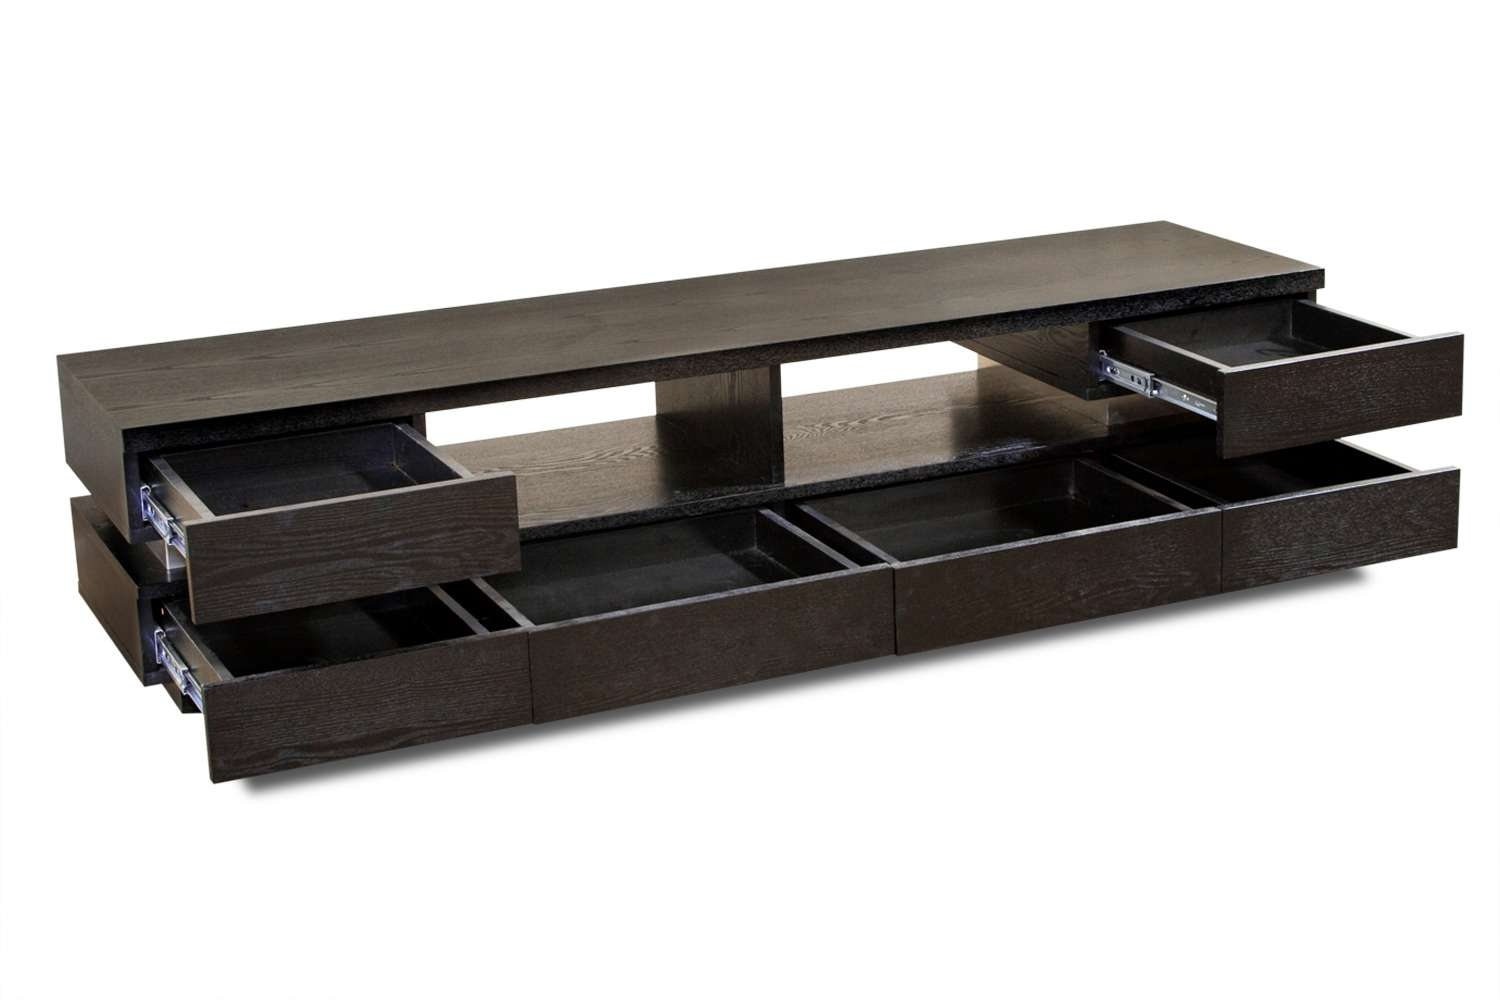 Custom Low Profile Tv Console Design With Drawer And Storage For Throughout Modern Low Tv Stands (View 6 of 20)